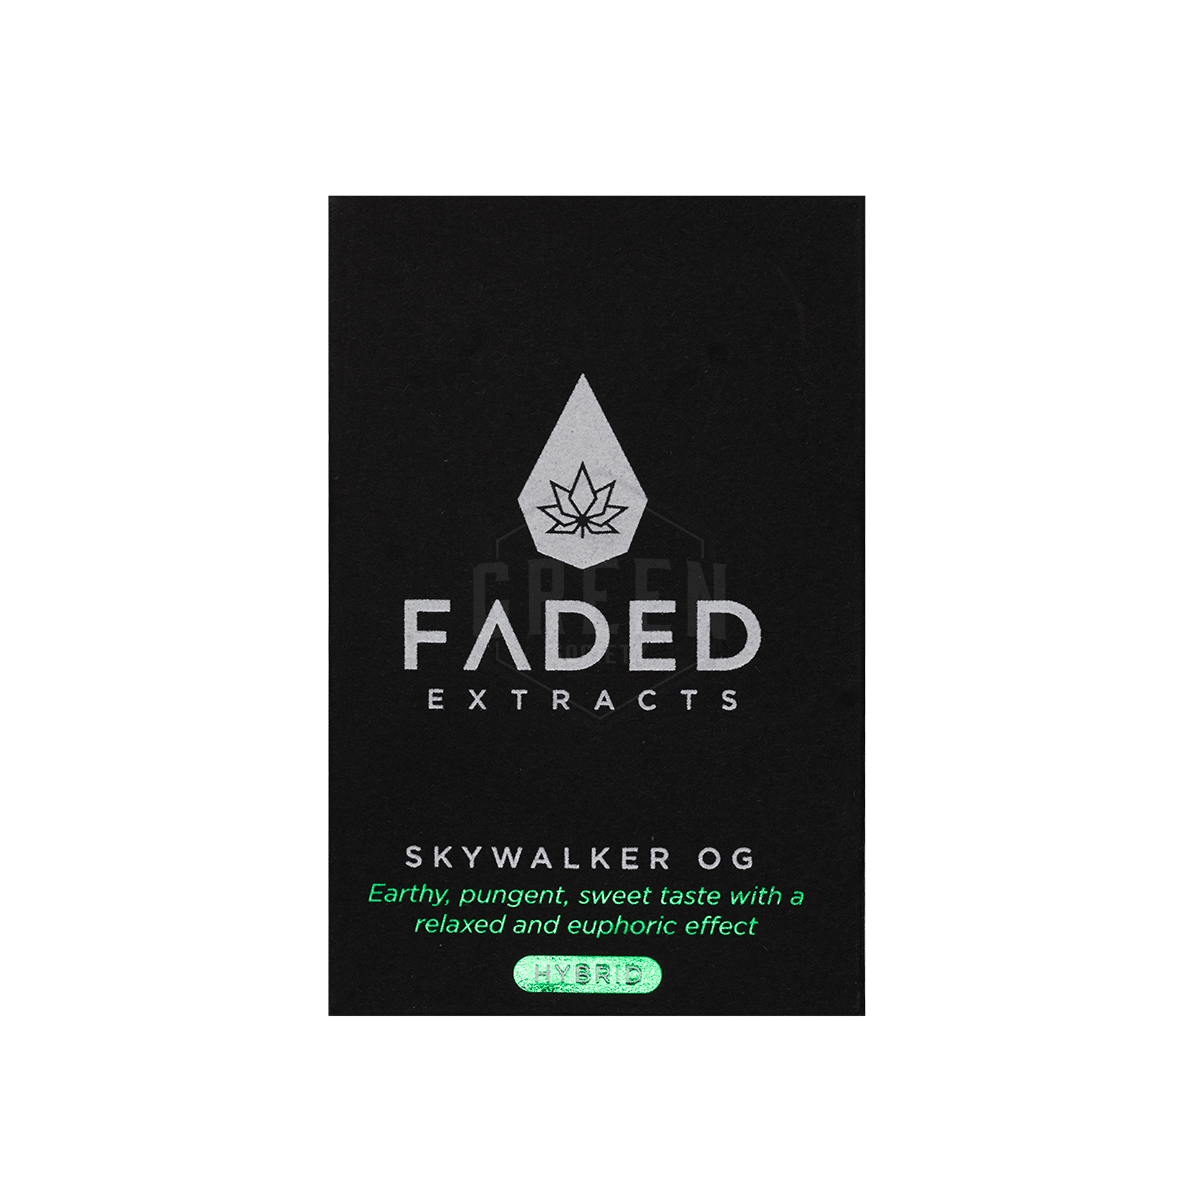 Skywalker OG Shatter by Faded Extracts by Green Society - Image © 2018 Green Society. All Rights Reserved.